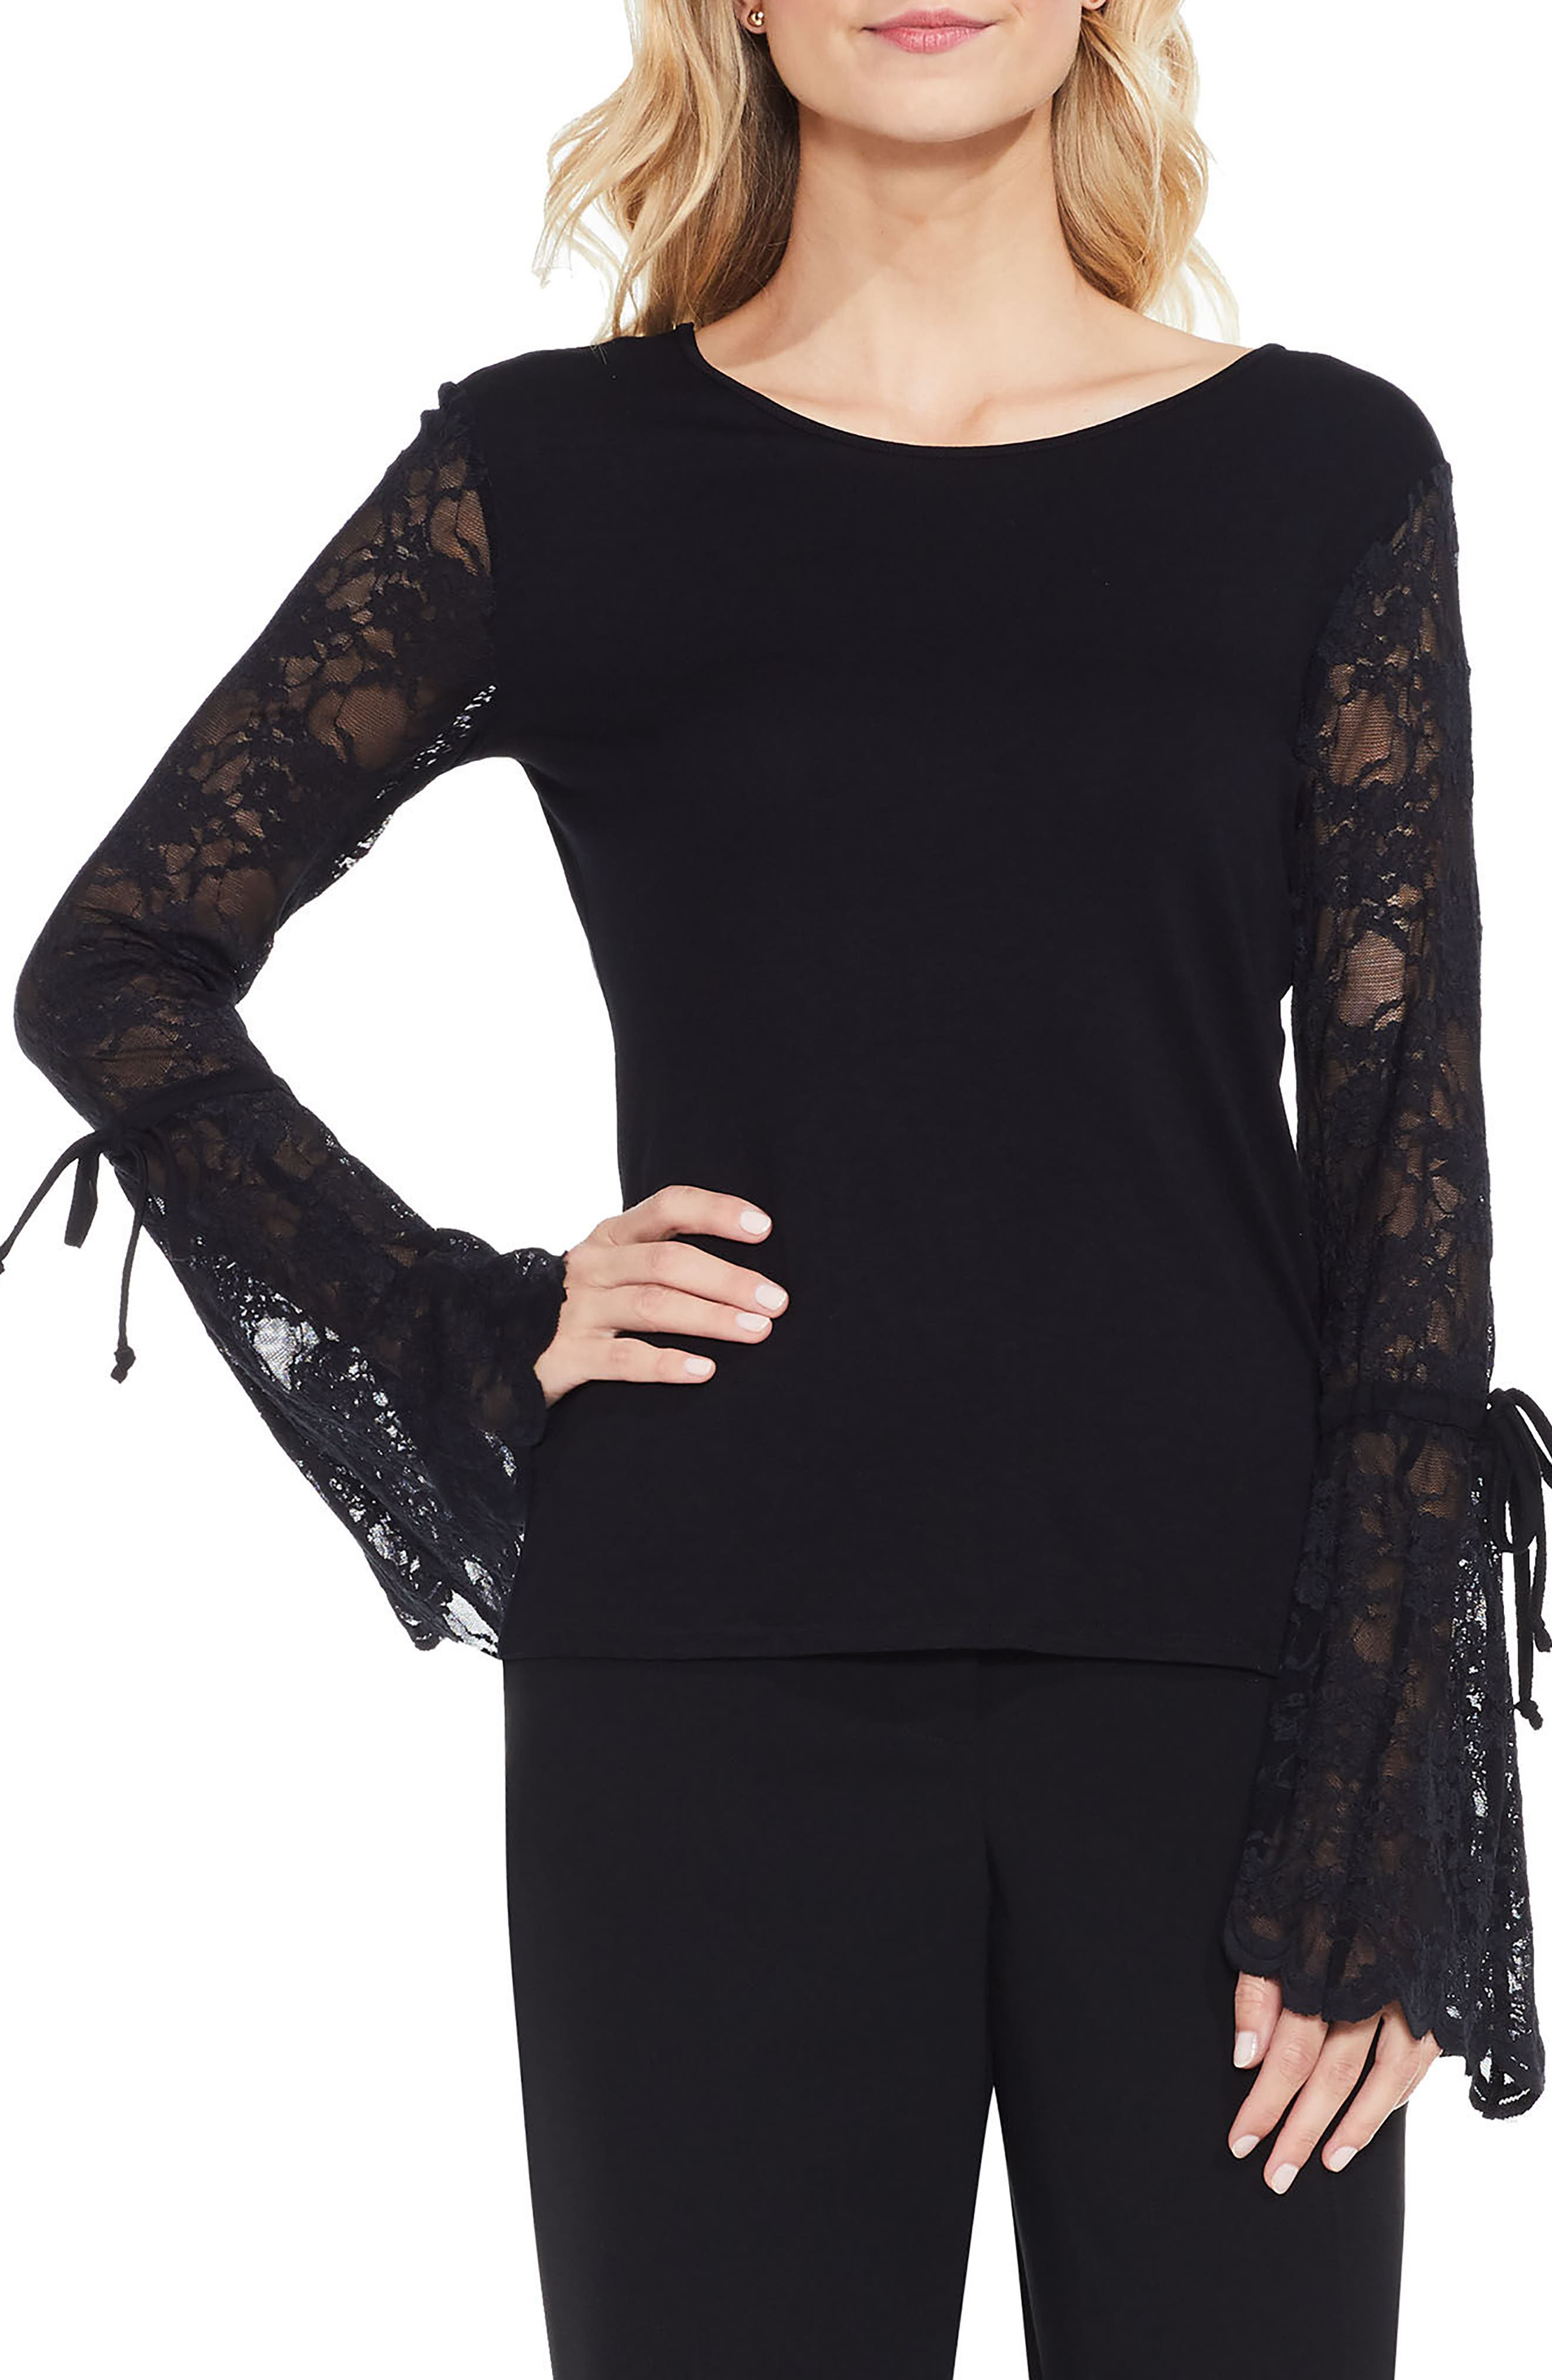 VINCE CAMUTO Lace Bell Sleeve Top